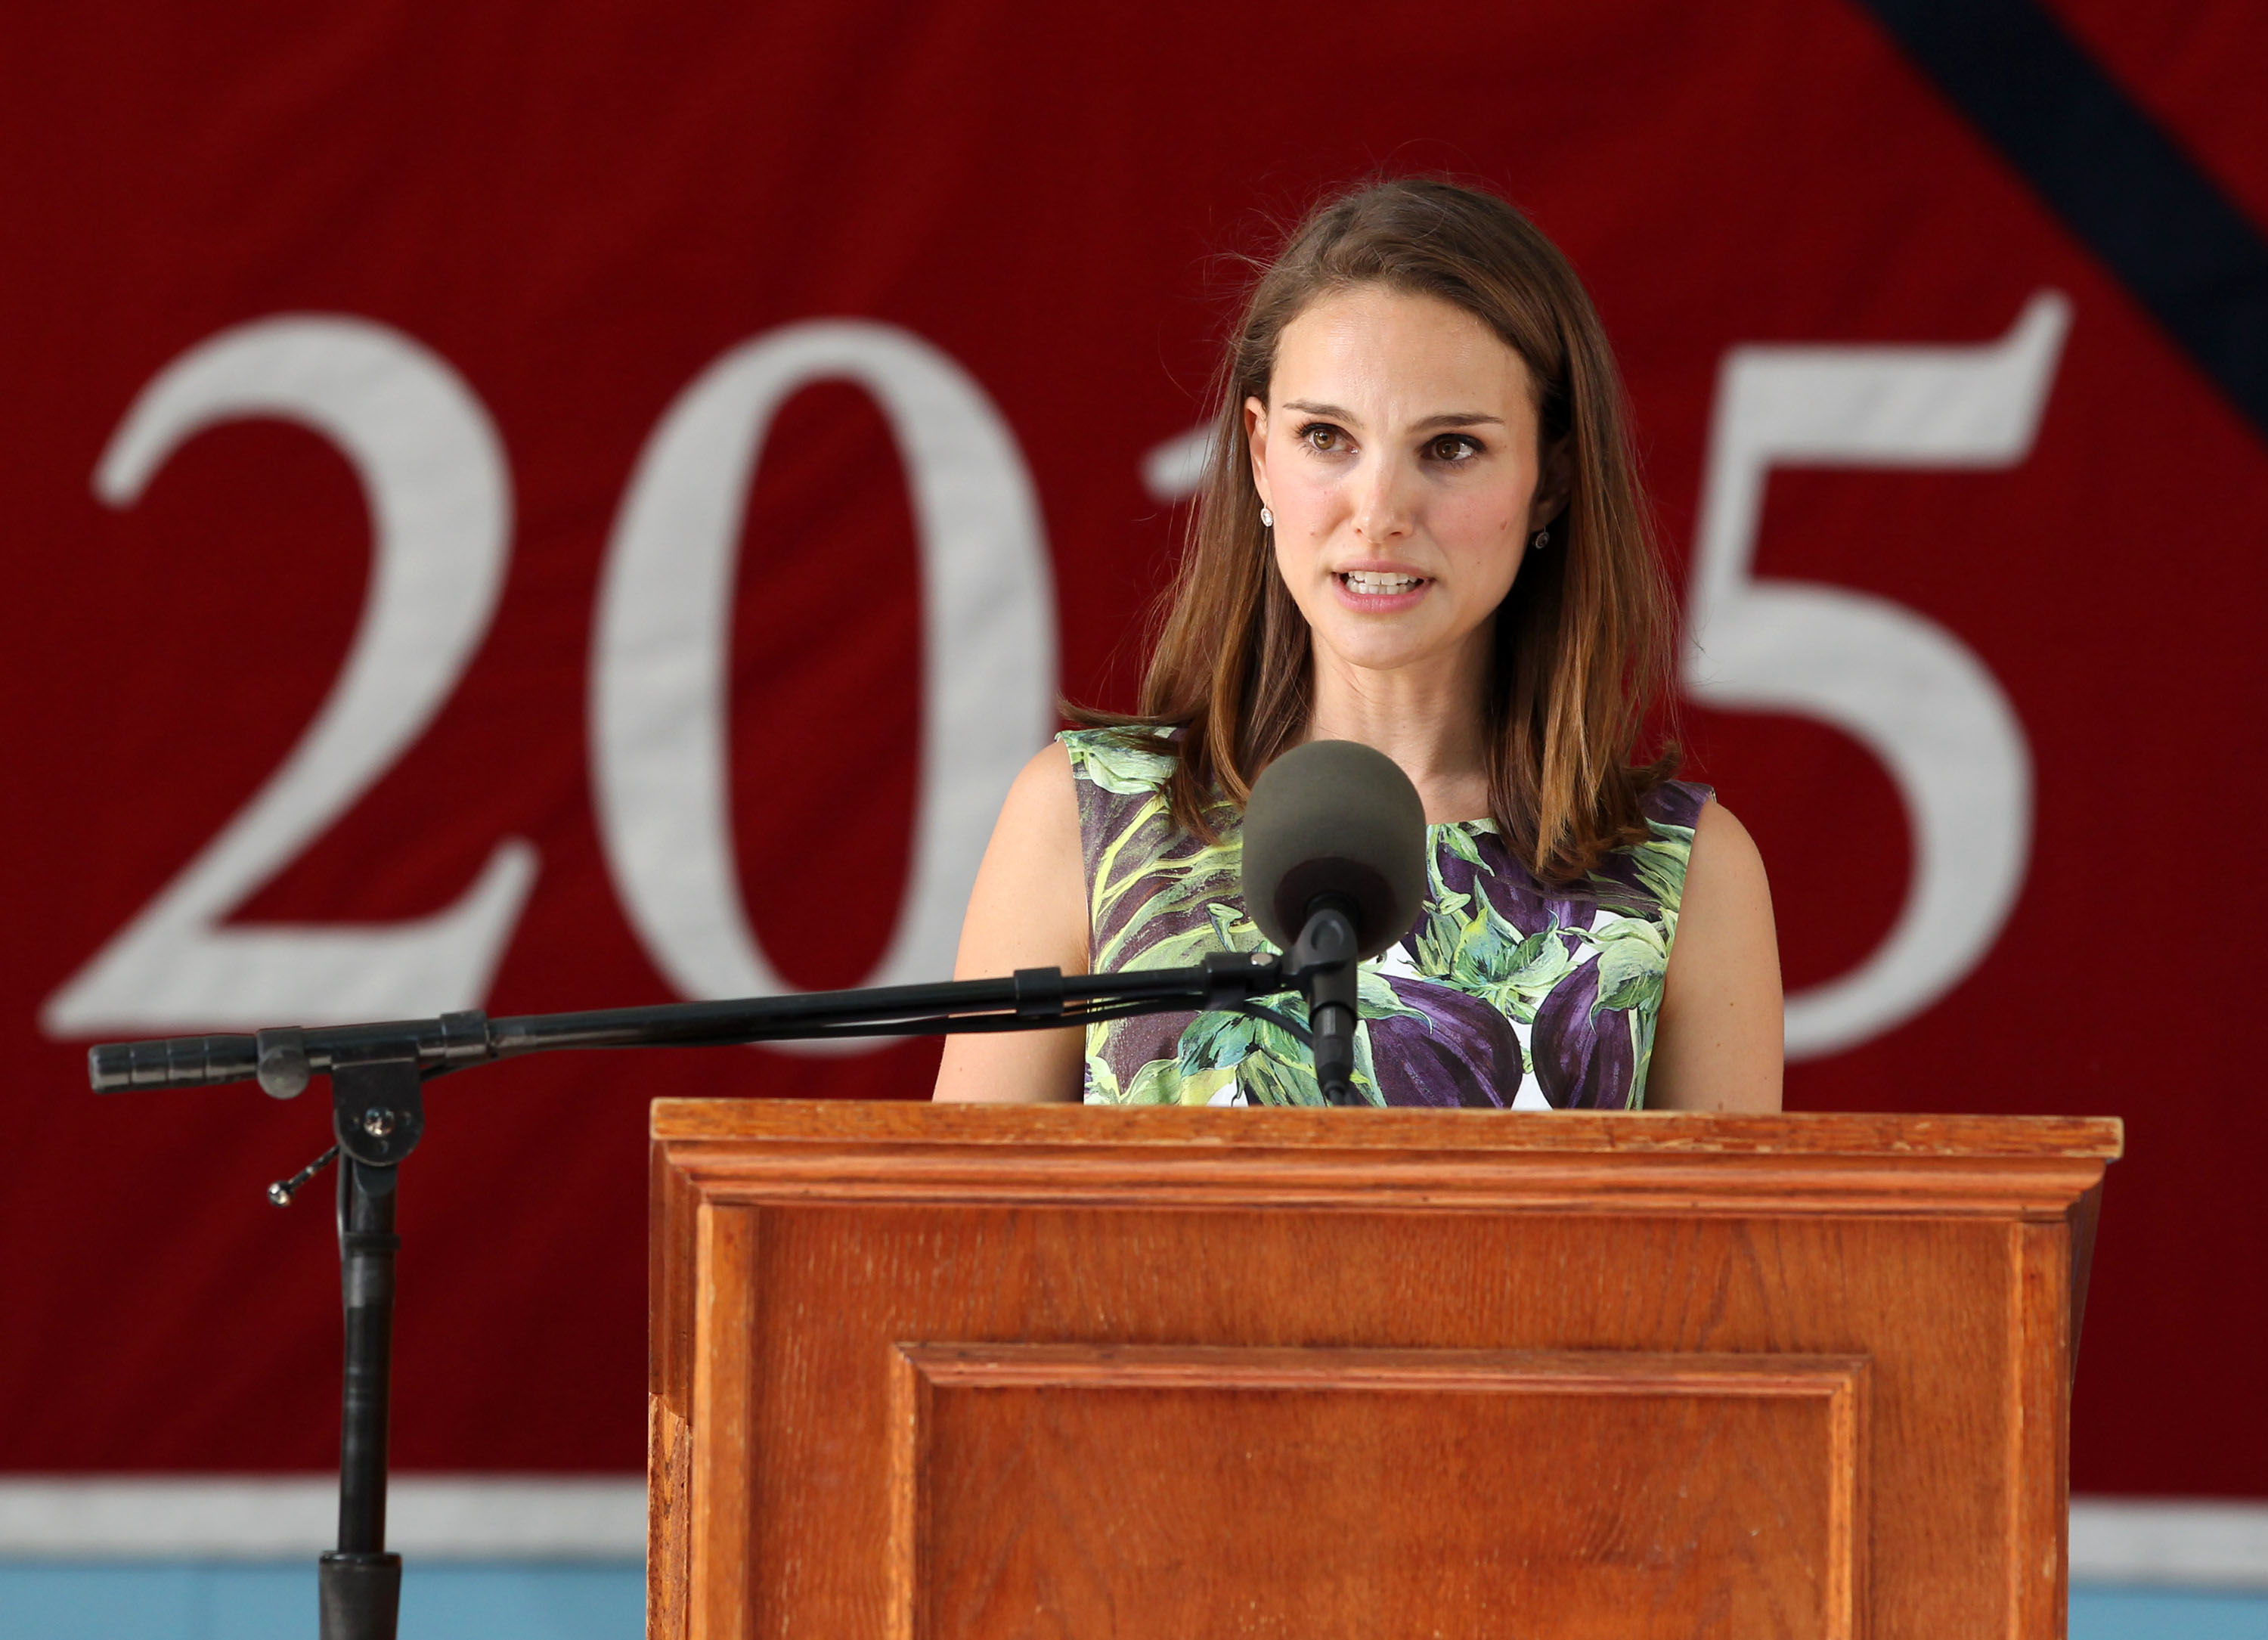 Natalie Portman Tells Harvard Grads About 'Dark Moments' and Fear of Being Labeled a 'Dumb Actress'